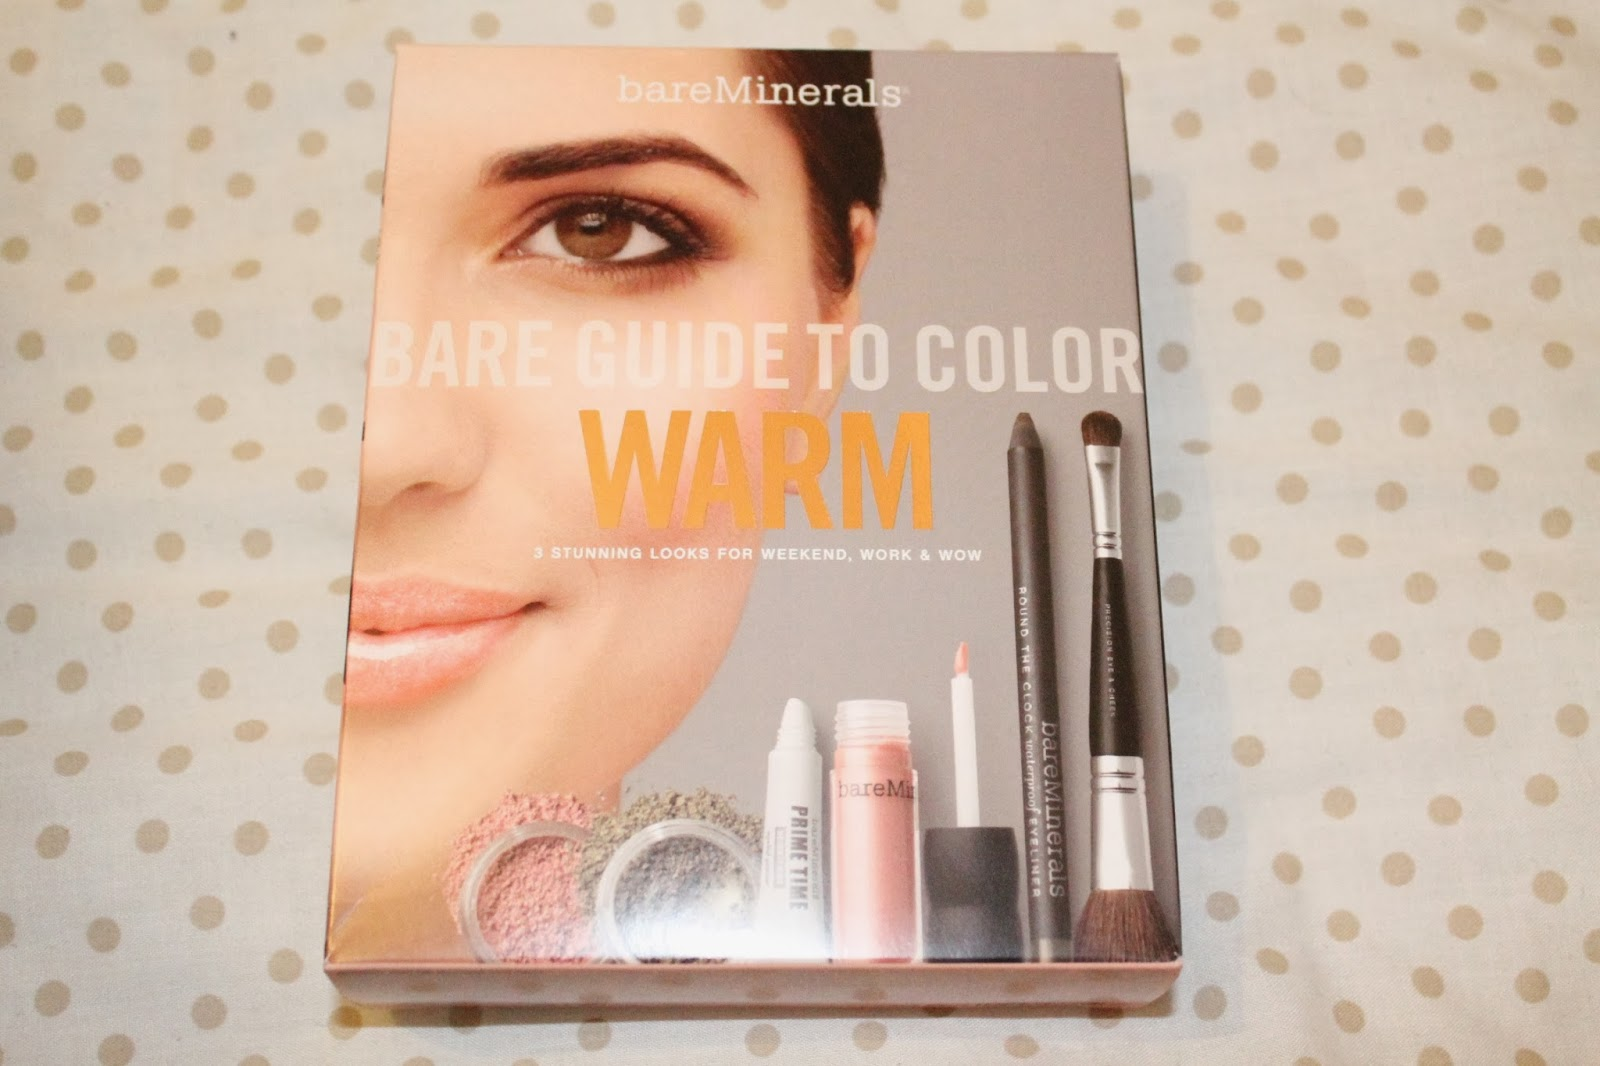 Xmas gift ideas 2 bareminerals bare guide to color warm xmas gift ideas 2 bareminerals bare guide to color warm reviewswatches bigblogmasproject biocorpaavc Images